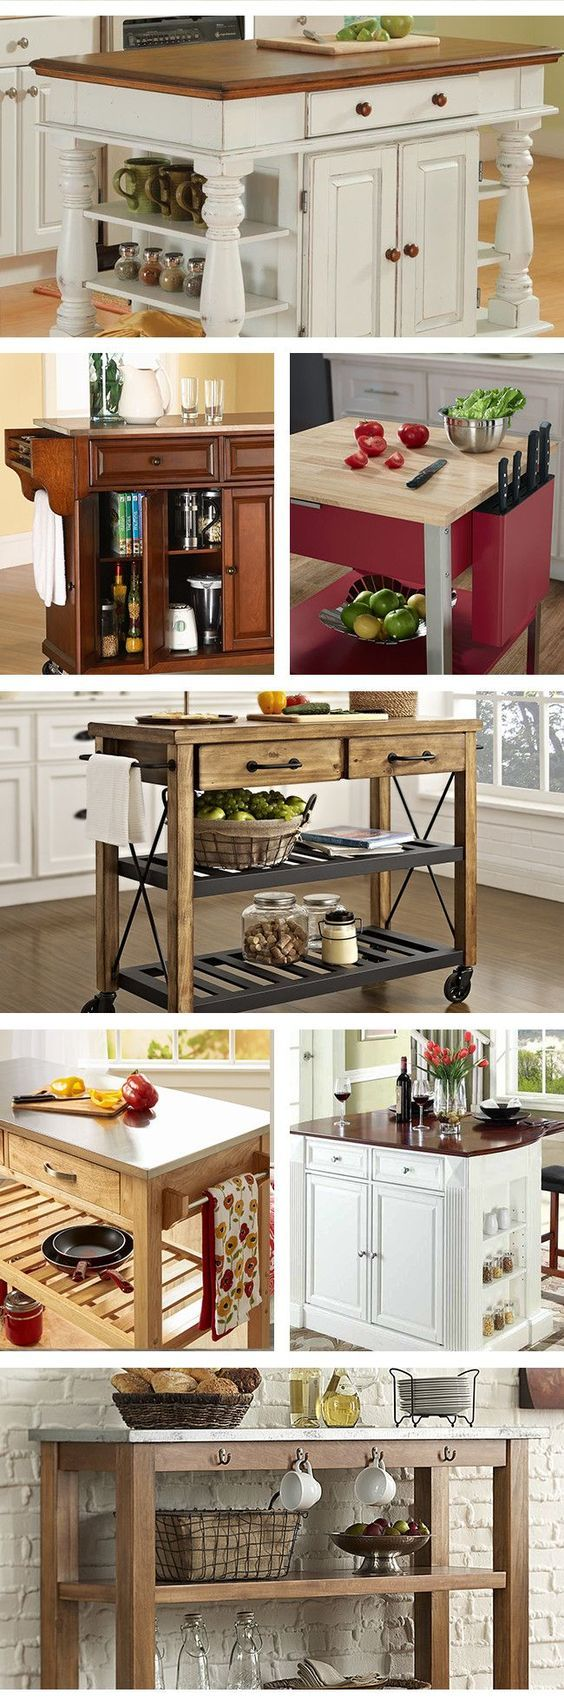 best 25 portable kitchen island ideas on pinterest portable need additional workspace and storage in your kitchen without undertaking an expensive and lengthy renovation a portable kitchen island or cart may be your